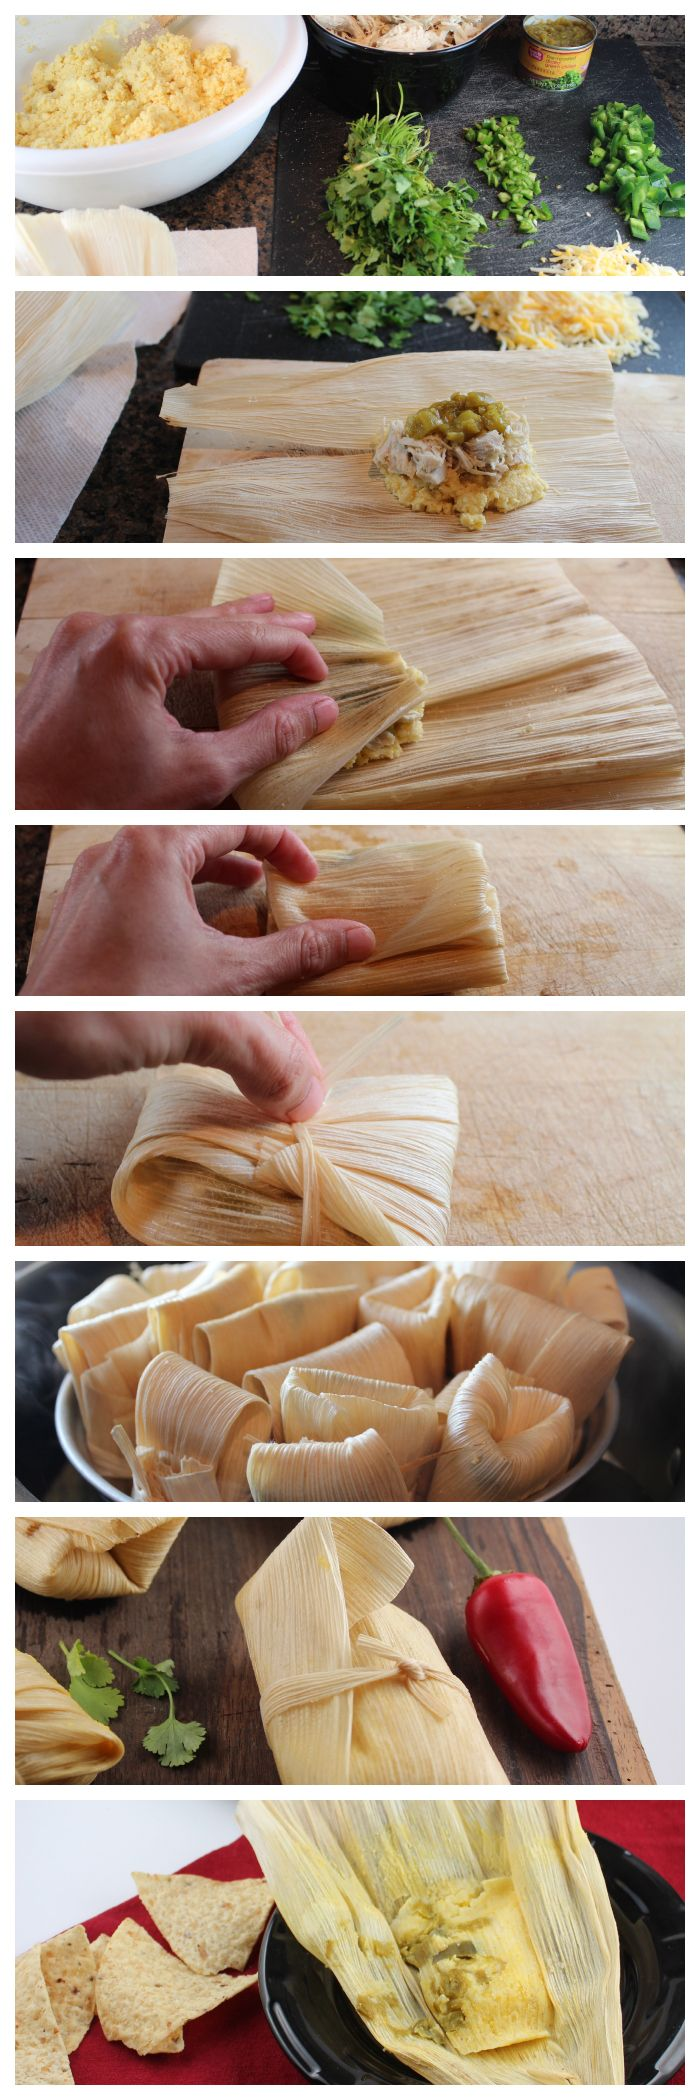 How to Make Homemade Tamales. I need to try making these this winter ...